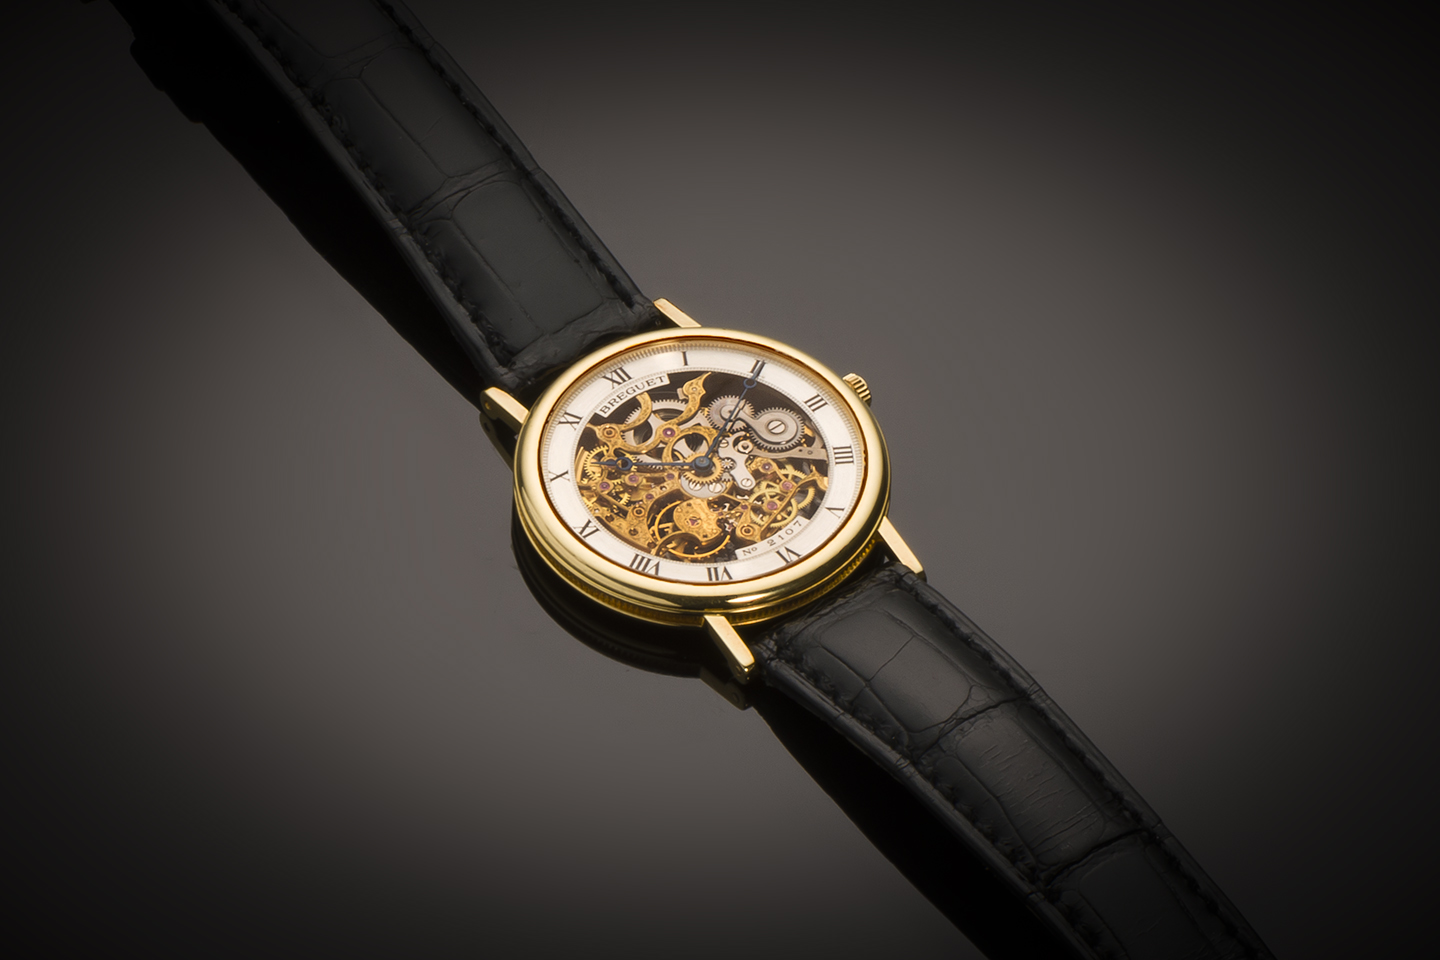 Montre Breguet squelette extra-plate or-1